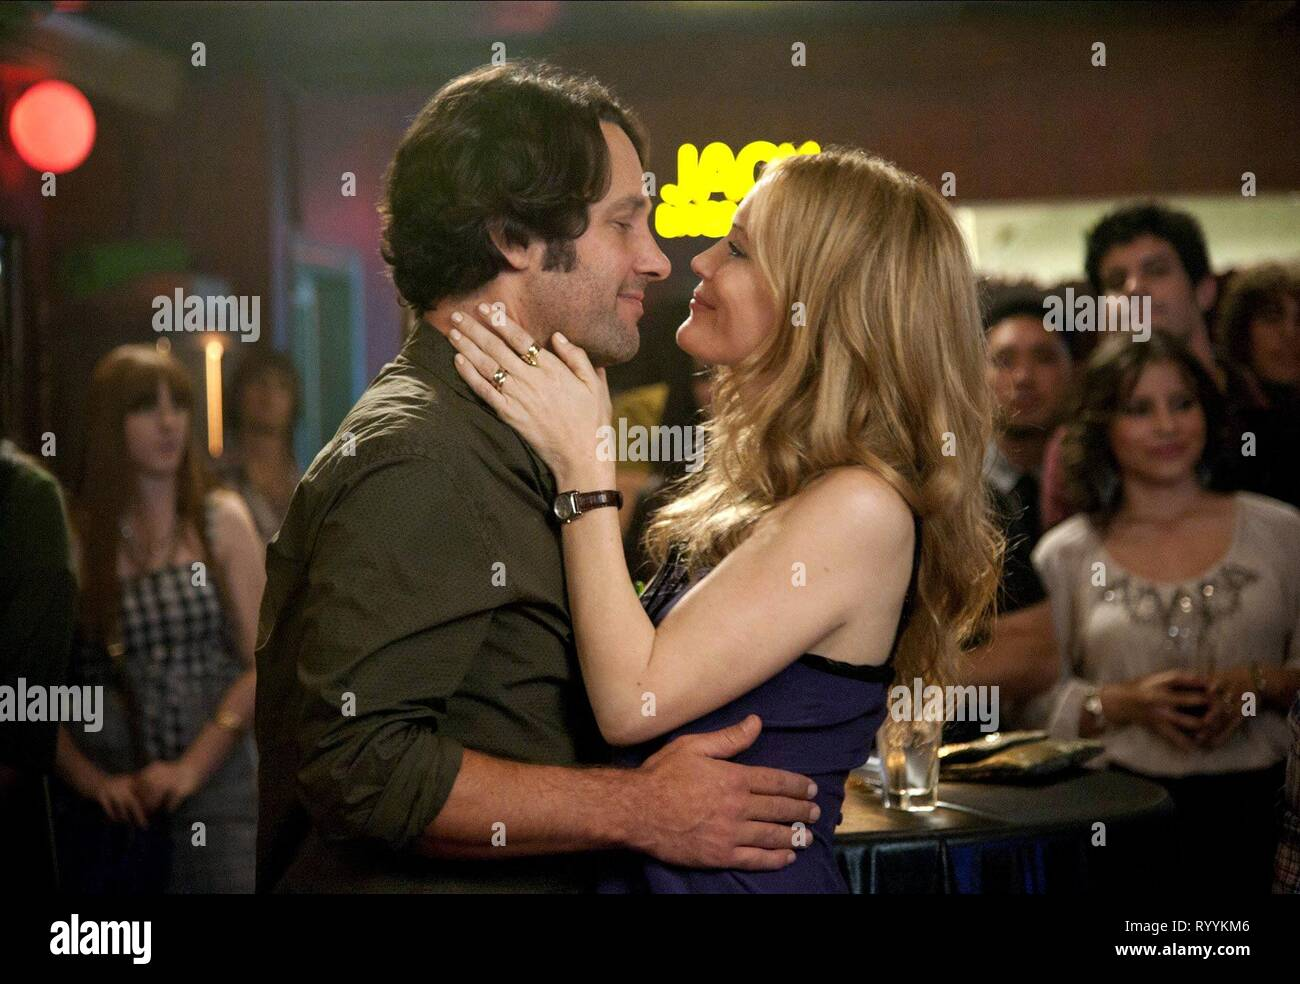 PAUL RUDD, LESLIE MANN, THIS IS 40, 2012 - Stock Image